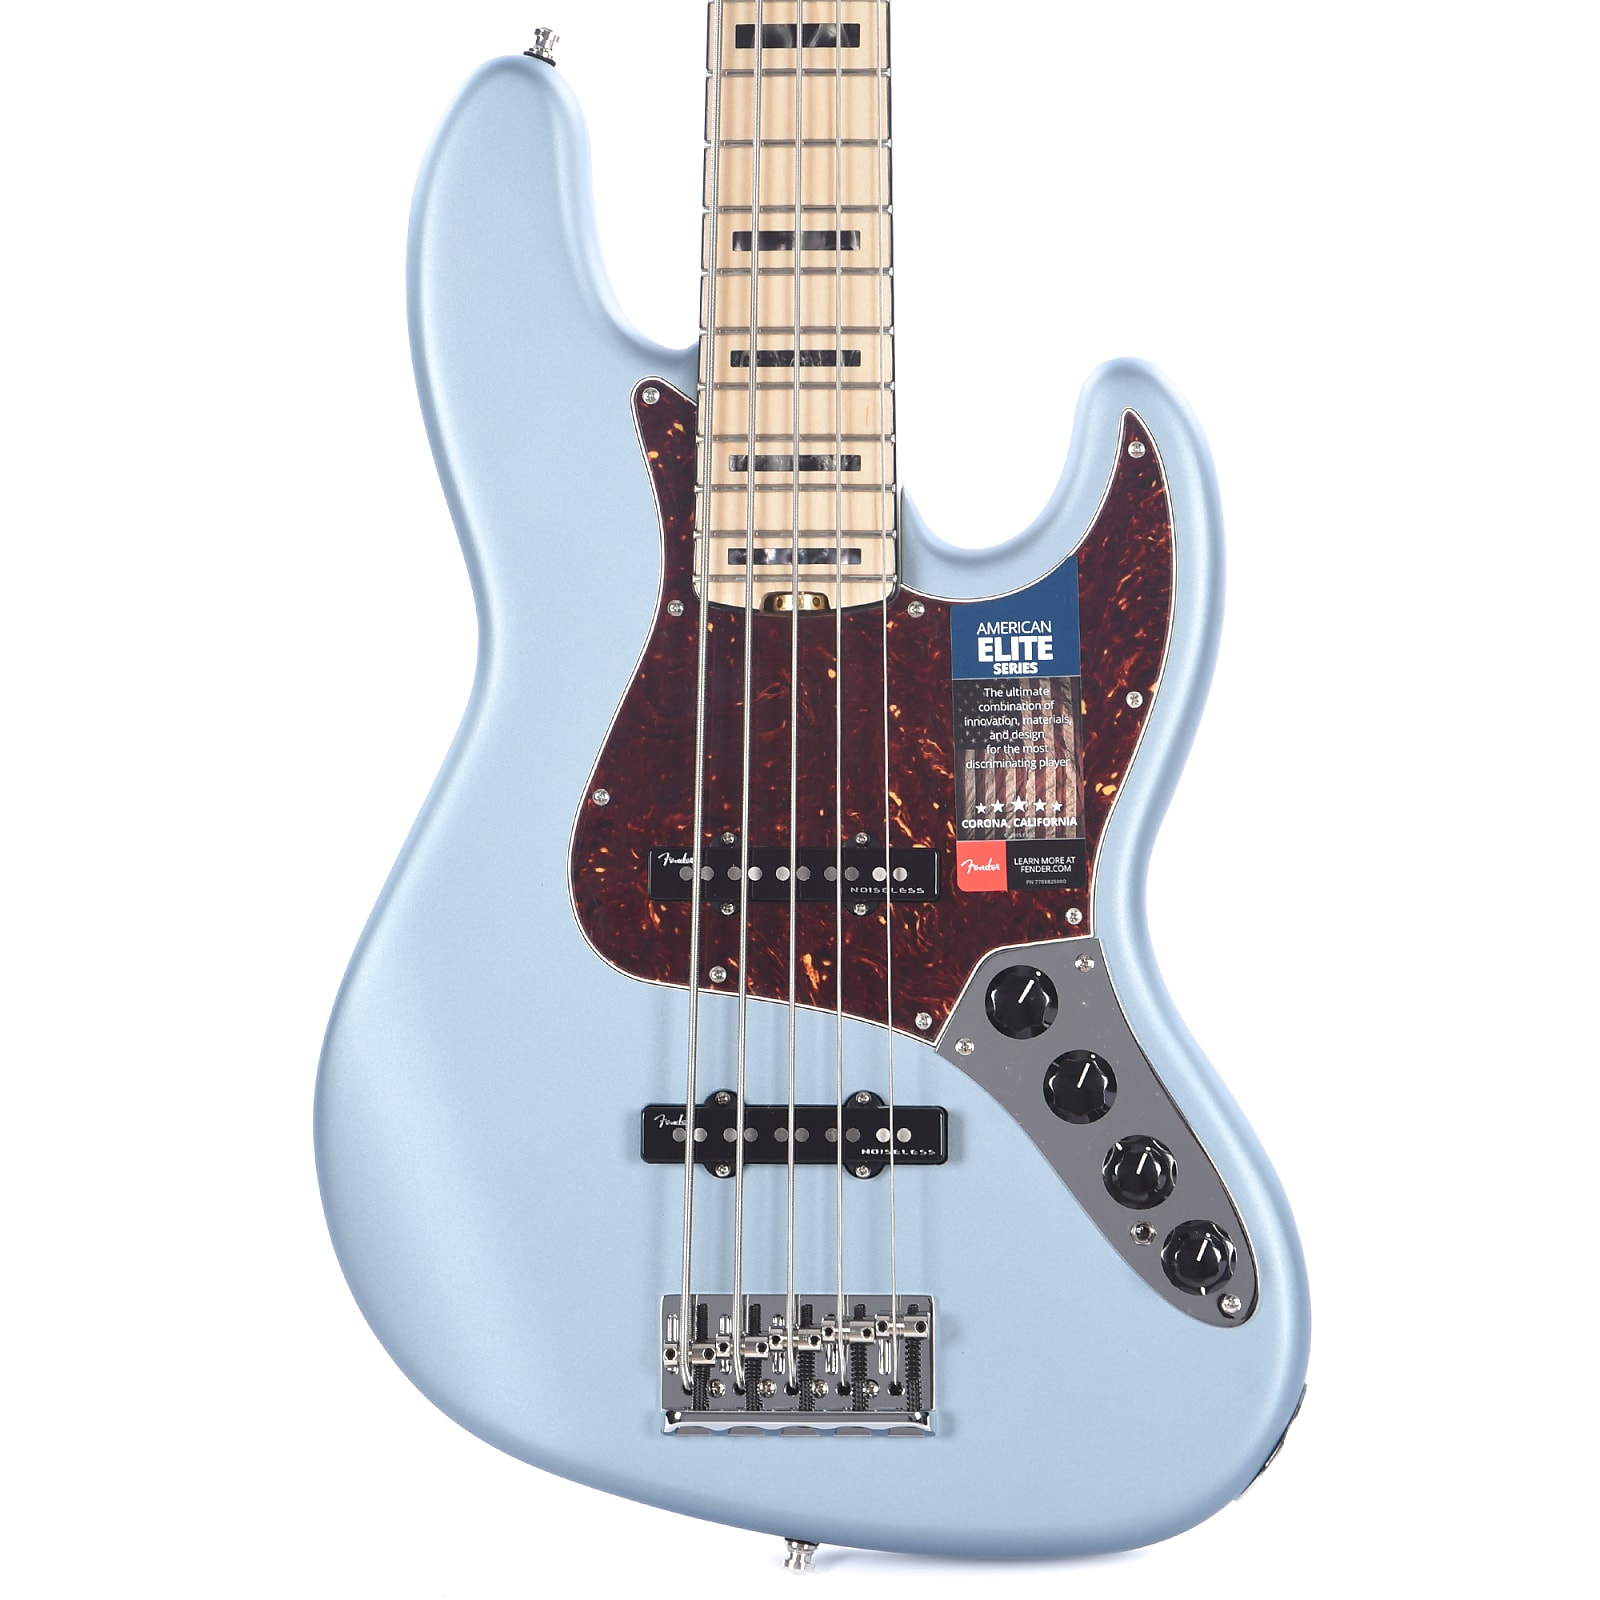 American Elite Jazz Bass : fender american elite jazz bass v 5 string satin ice blue metallic ~ Vivirlamusica.com Haus und Dekorationen